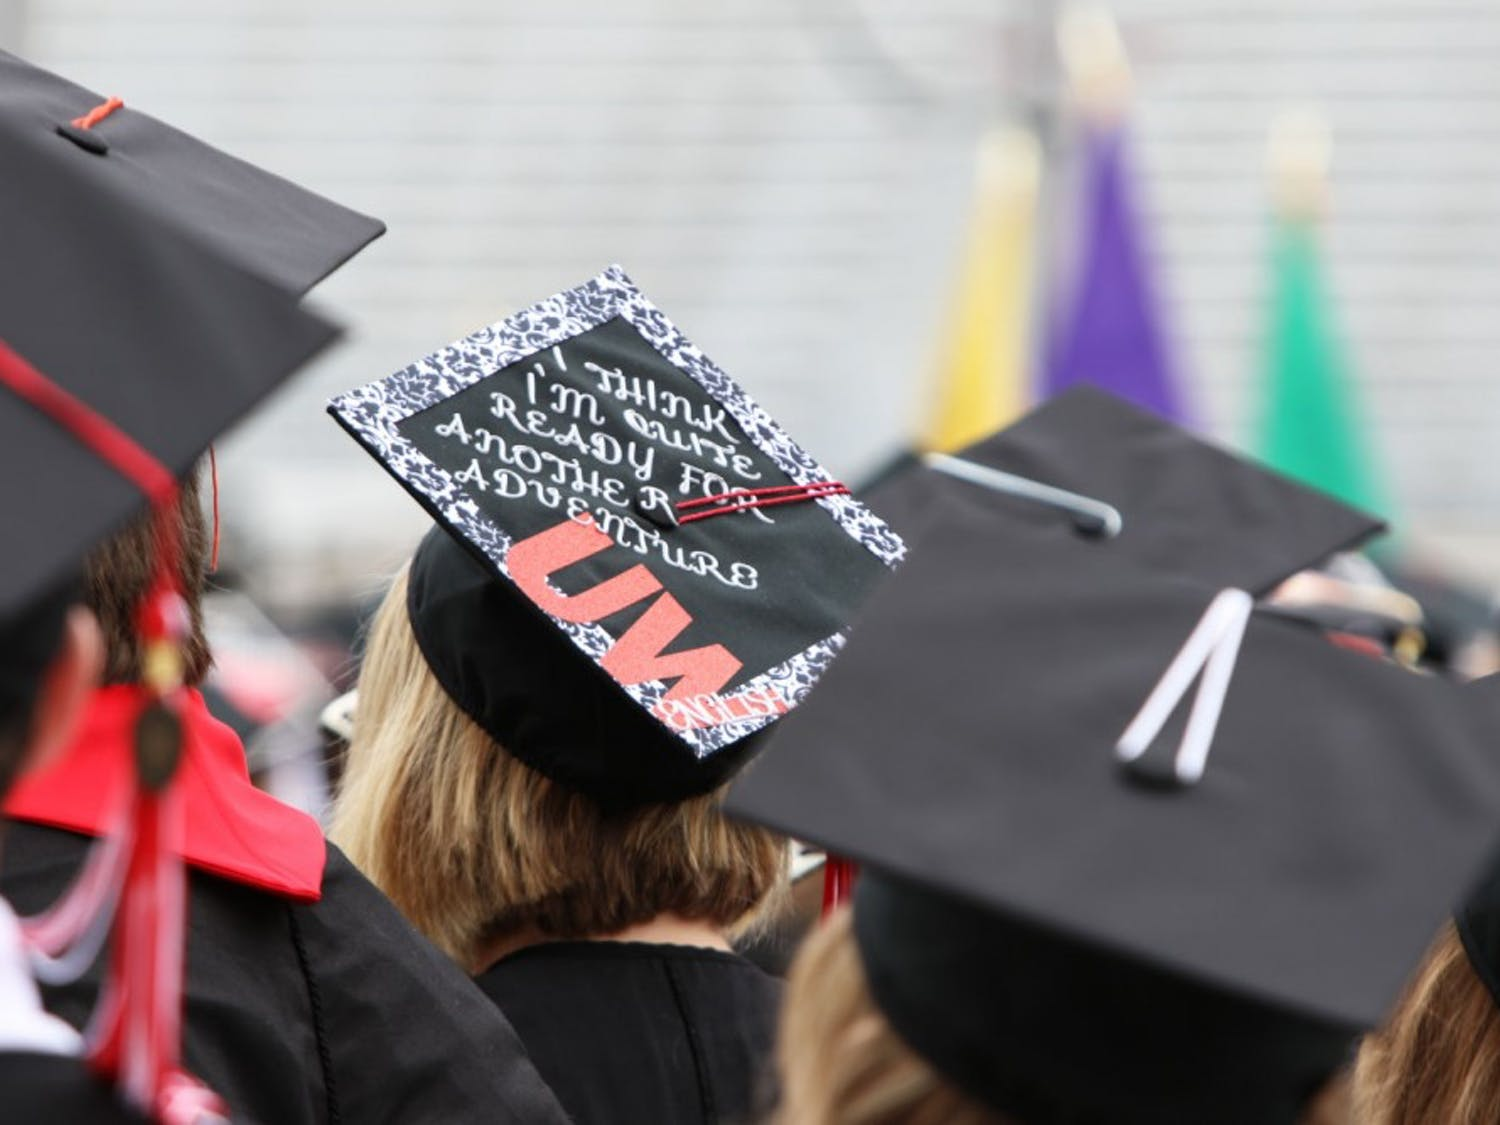 The UW community, friends and family gathered Saturday for the Spring Commencement Ceremony at Camp Randall Stadium. Among the guests celebrating the occasion was keynote speaker and journalist Katie Couric.